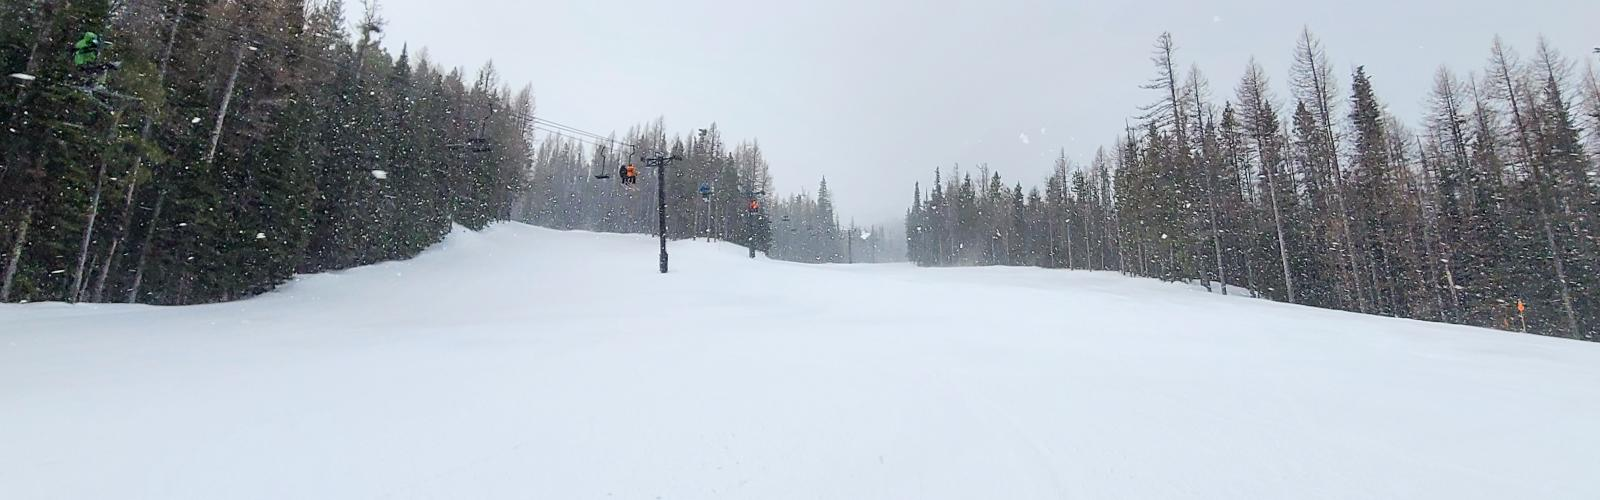 Skier making a turn while it's snowing